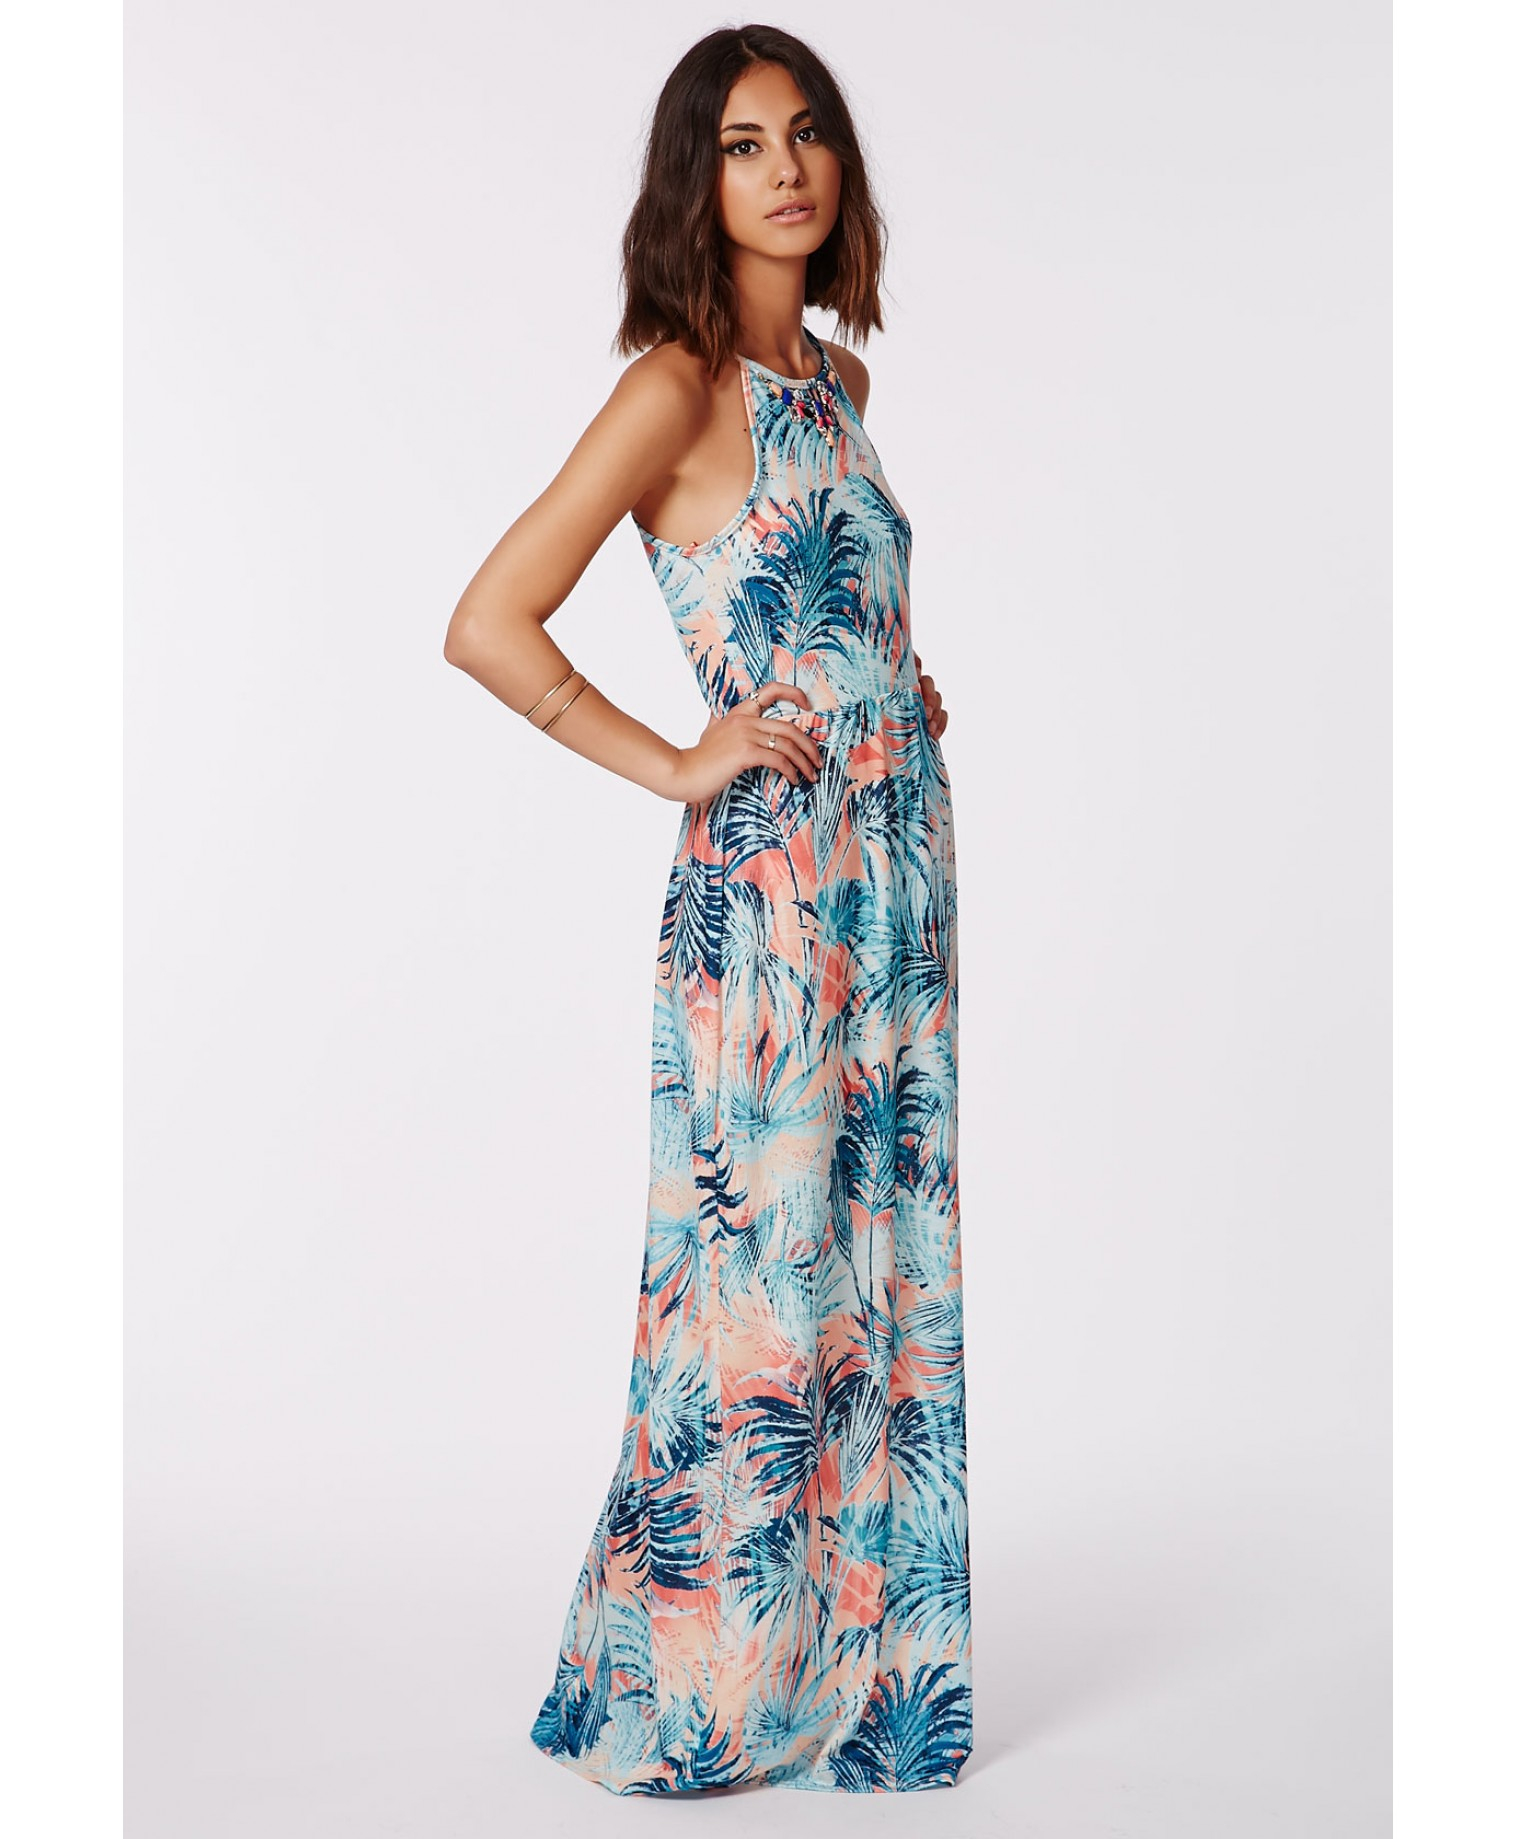 Missguided Justana Necklace Tropical Racer Neck Maxi Dress | Lyst